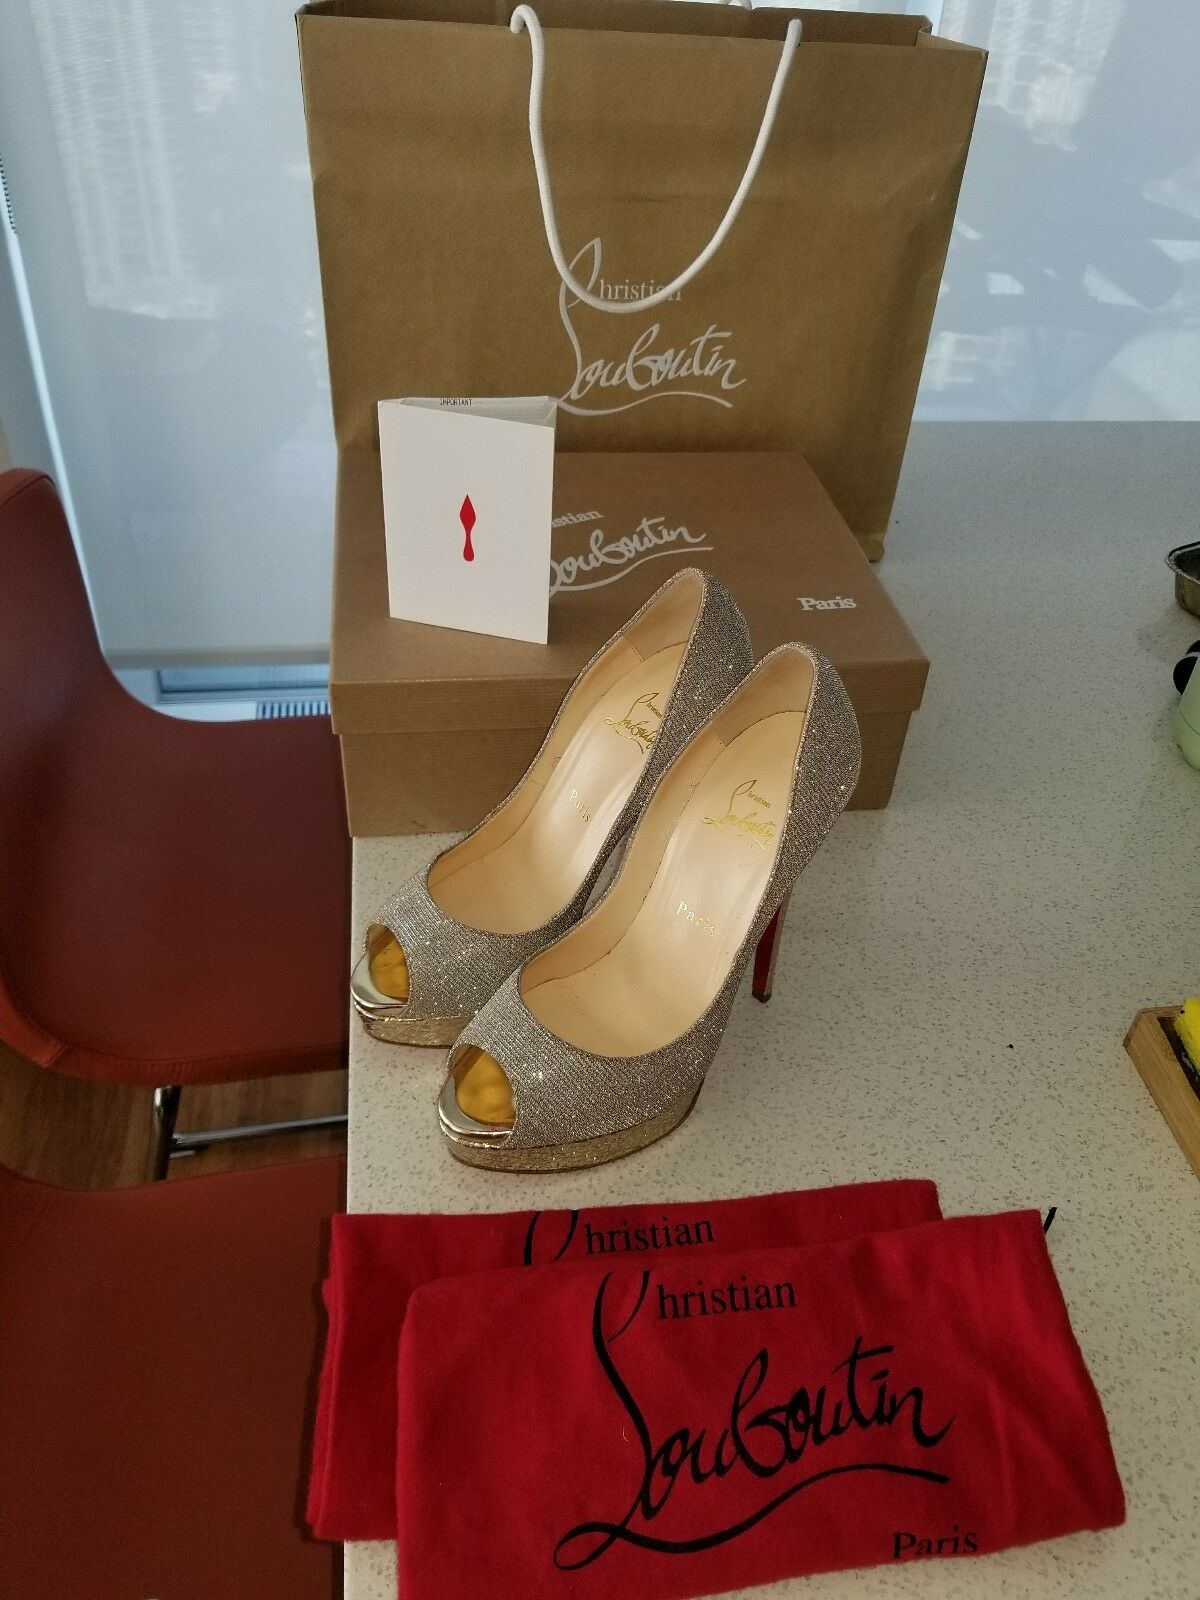 Christian Louboutin Lady Lady Lady Peep gold  shoes Sz 38 (7.5) 6  heels, with box & bag d494a4